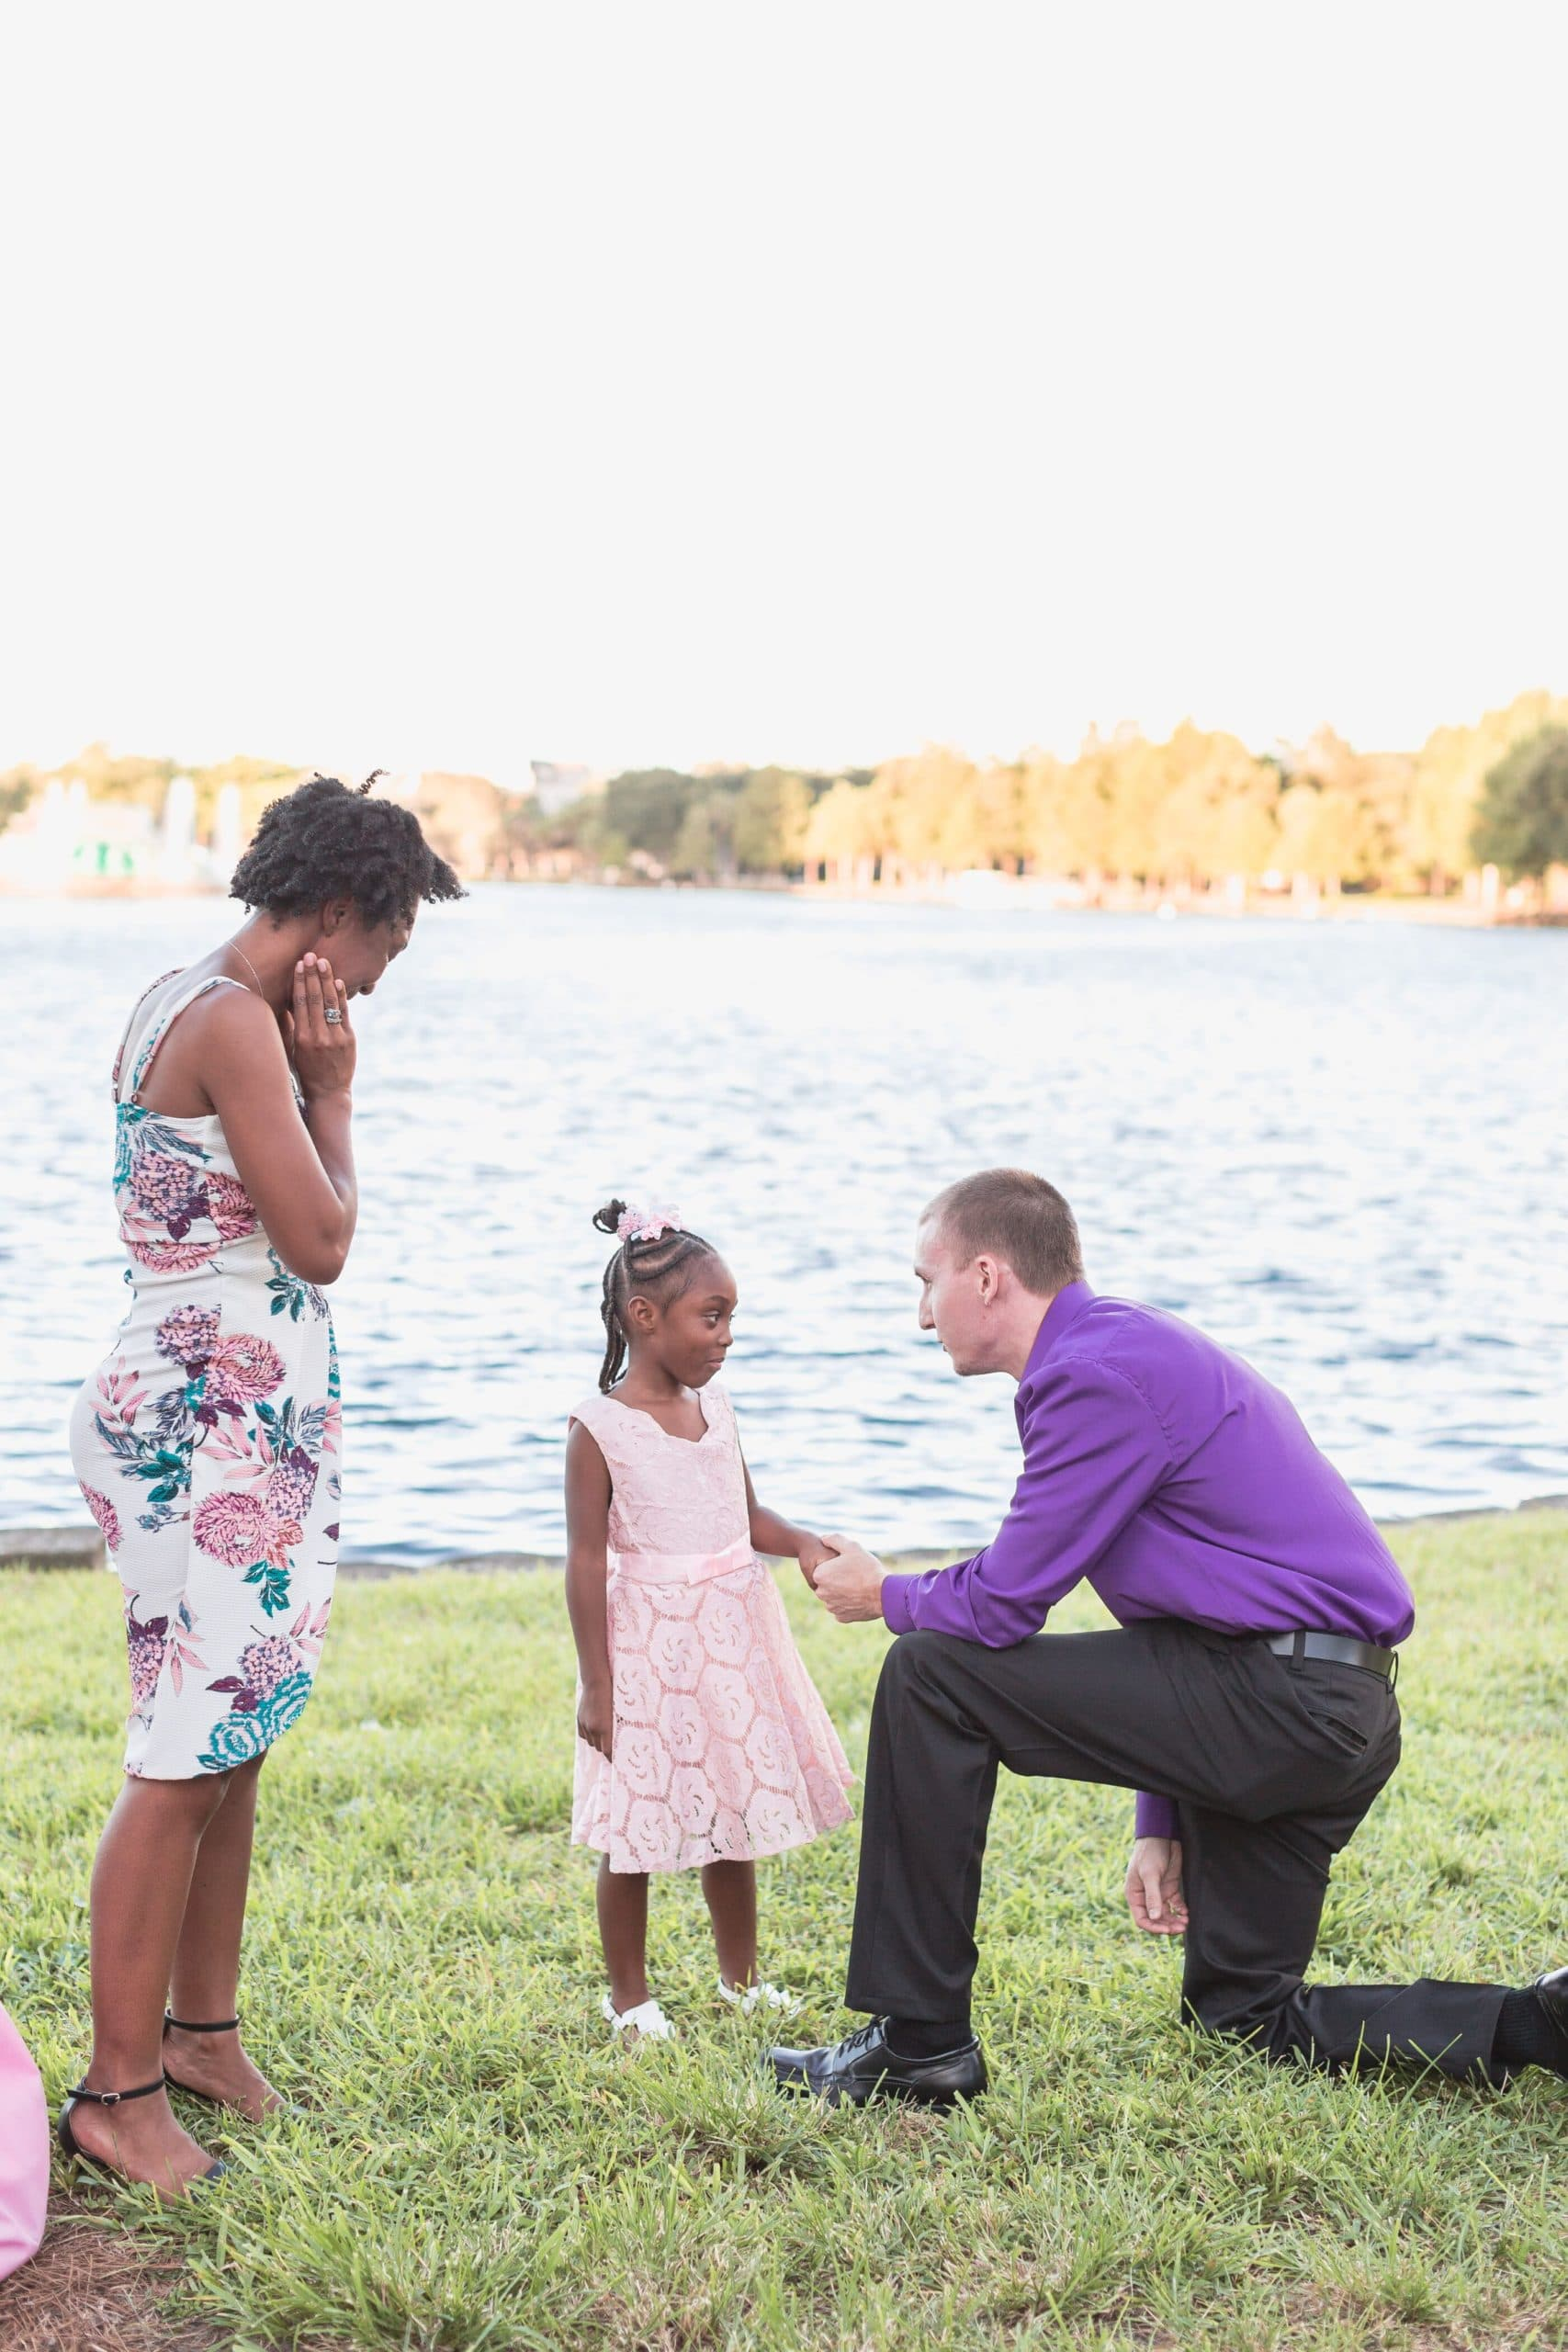 man in purple shirt on bended knee in front of lake proposing to daughter in pink dress